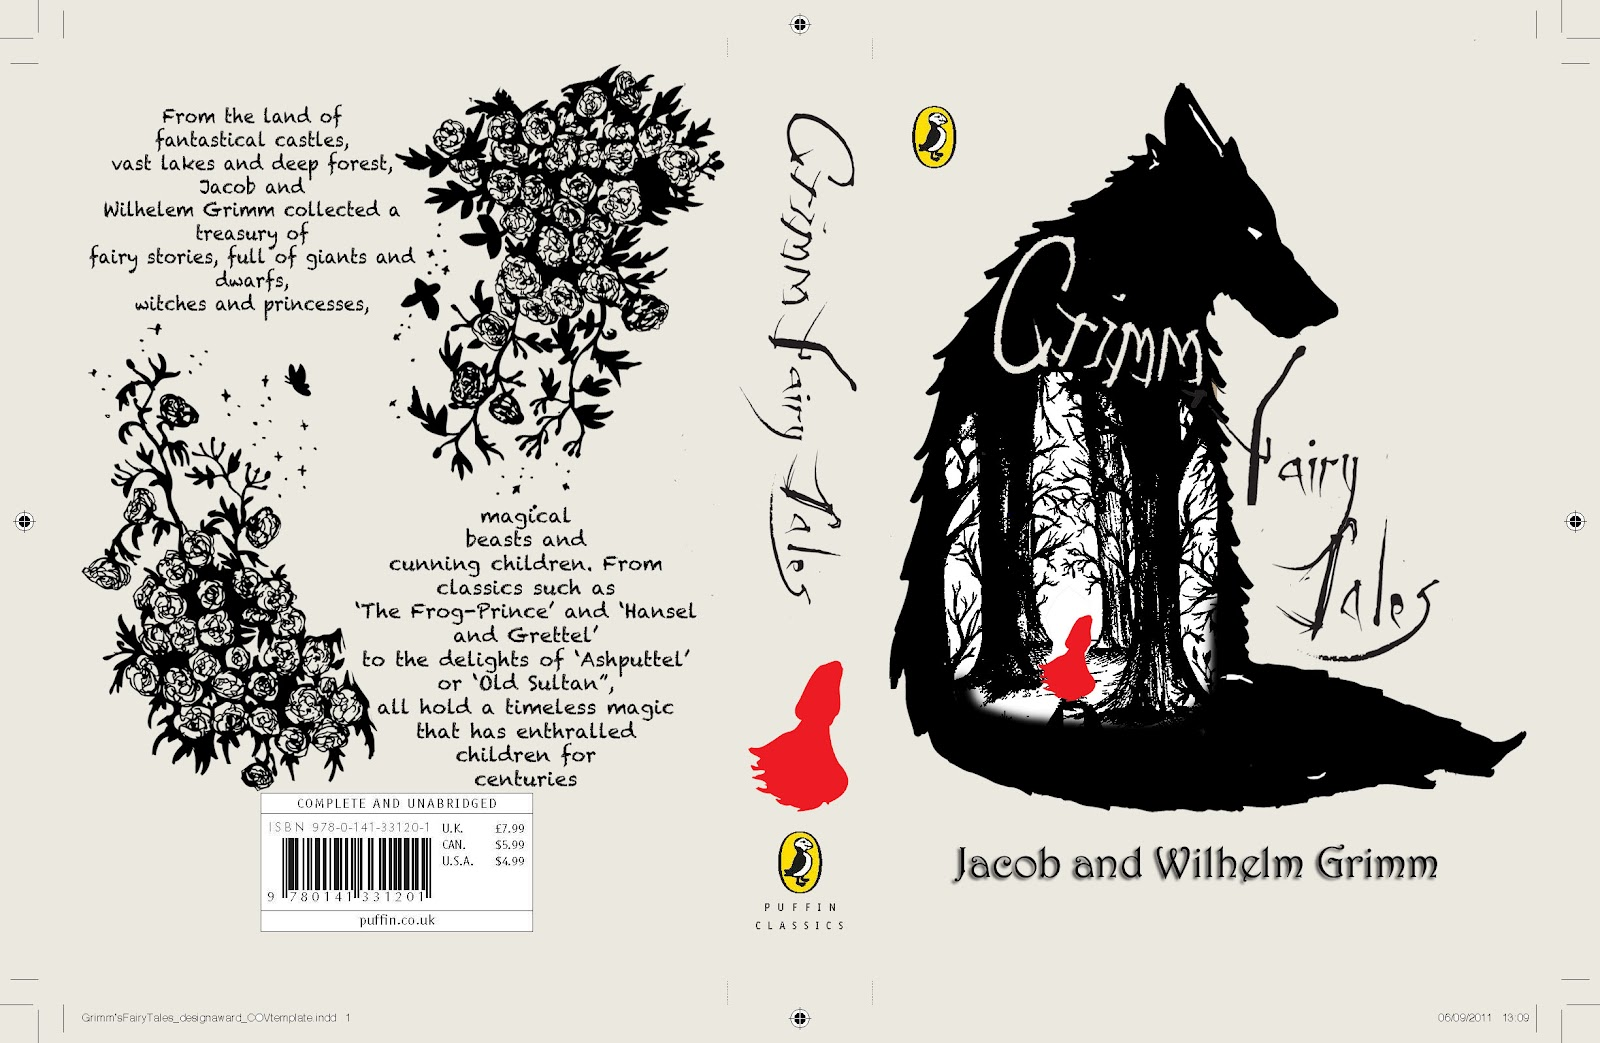 Best Book Cover Layout Design ~ Amanda gilbert pdp grimm book cover design